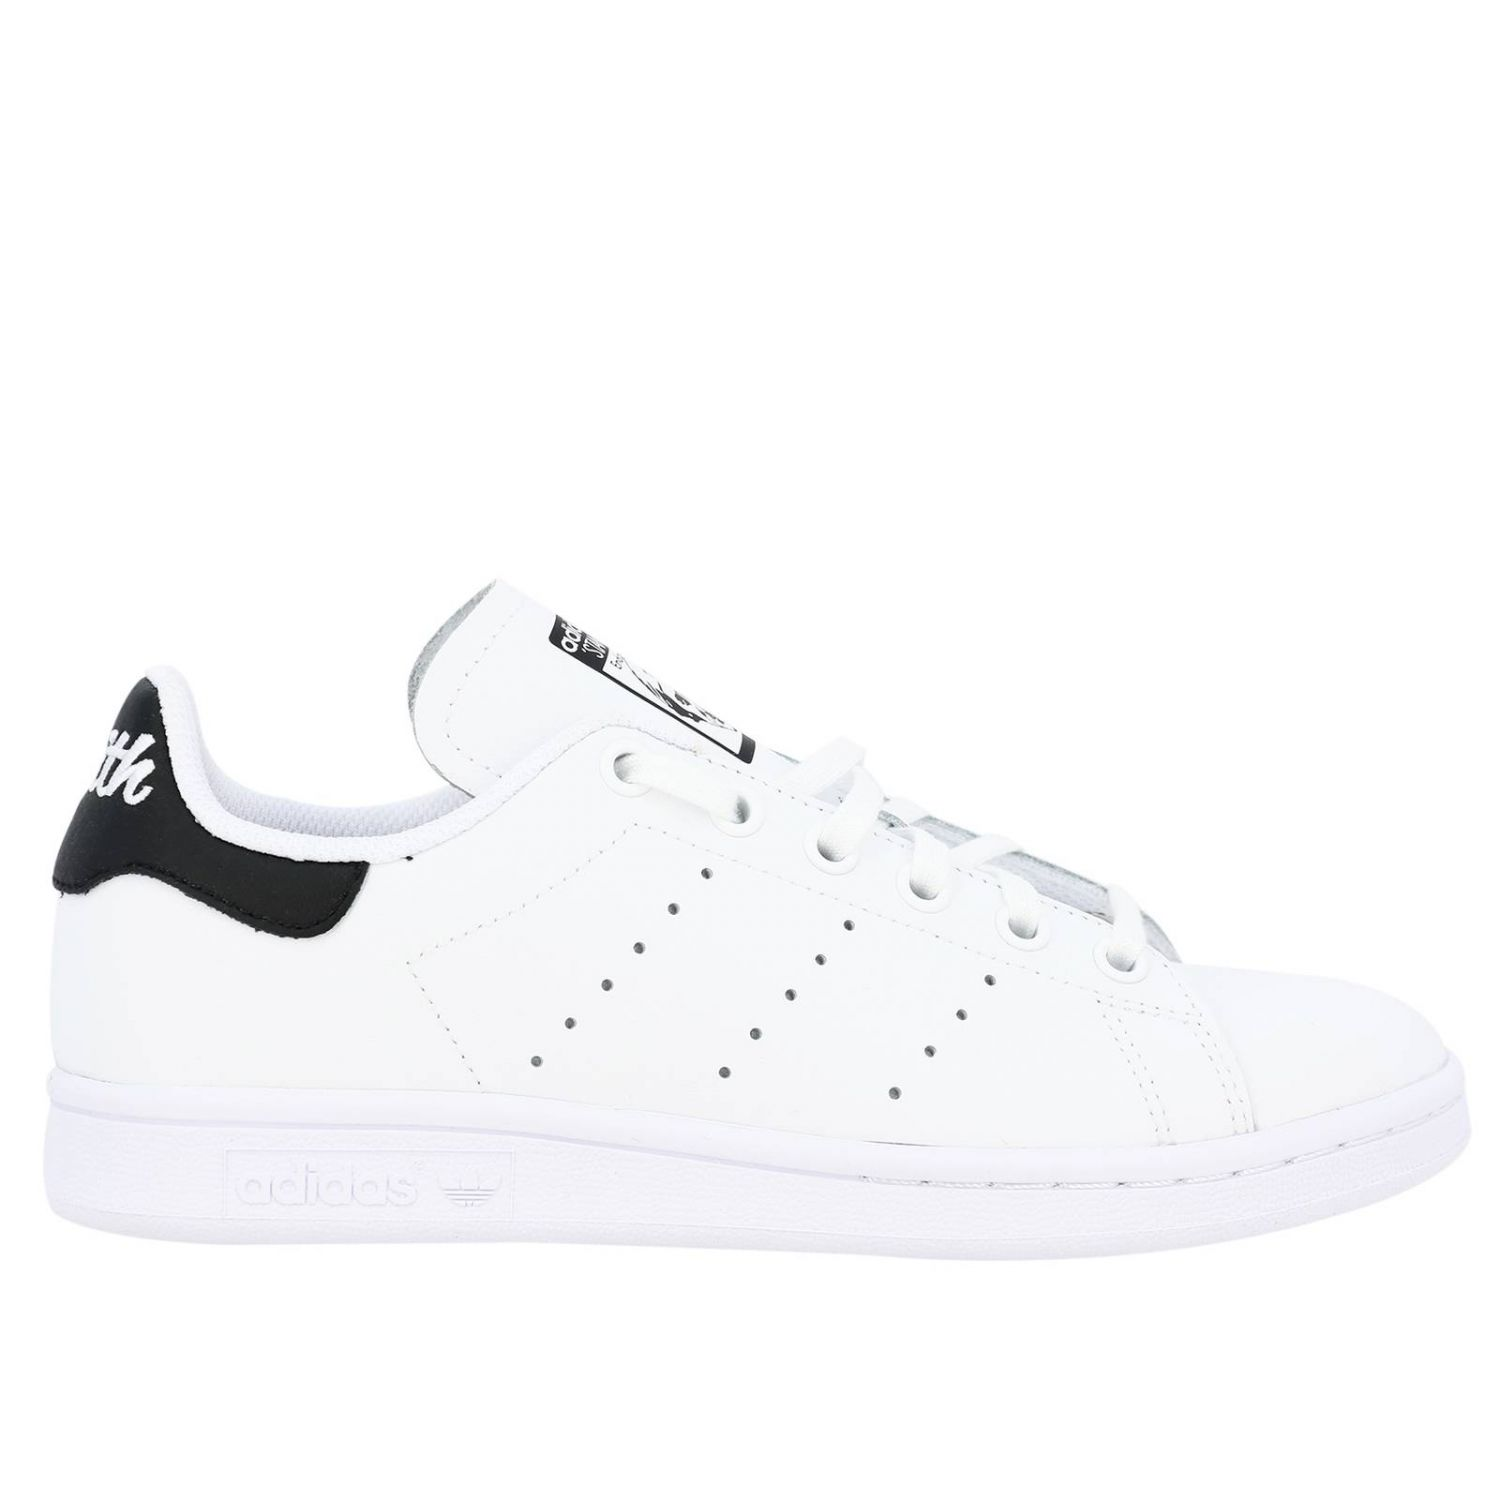 鞋履 Adidas Originals: Adidas Originals Stan Smith 真皮对比后跟运动鞋 白色 1